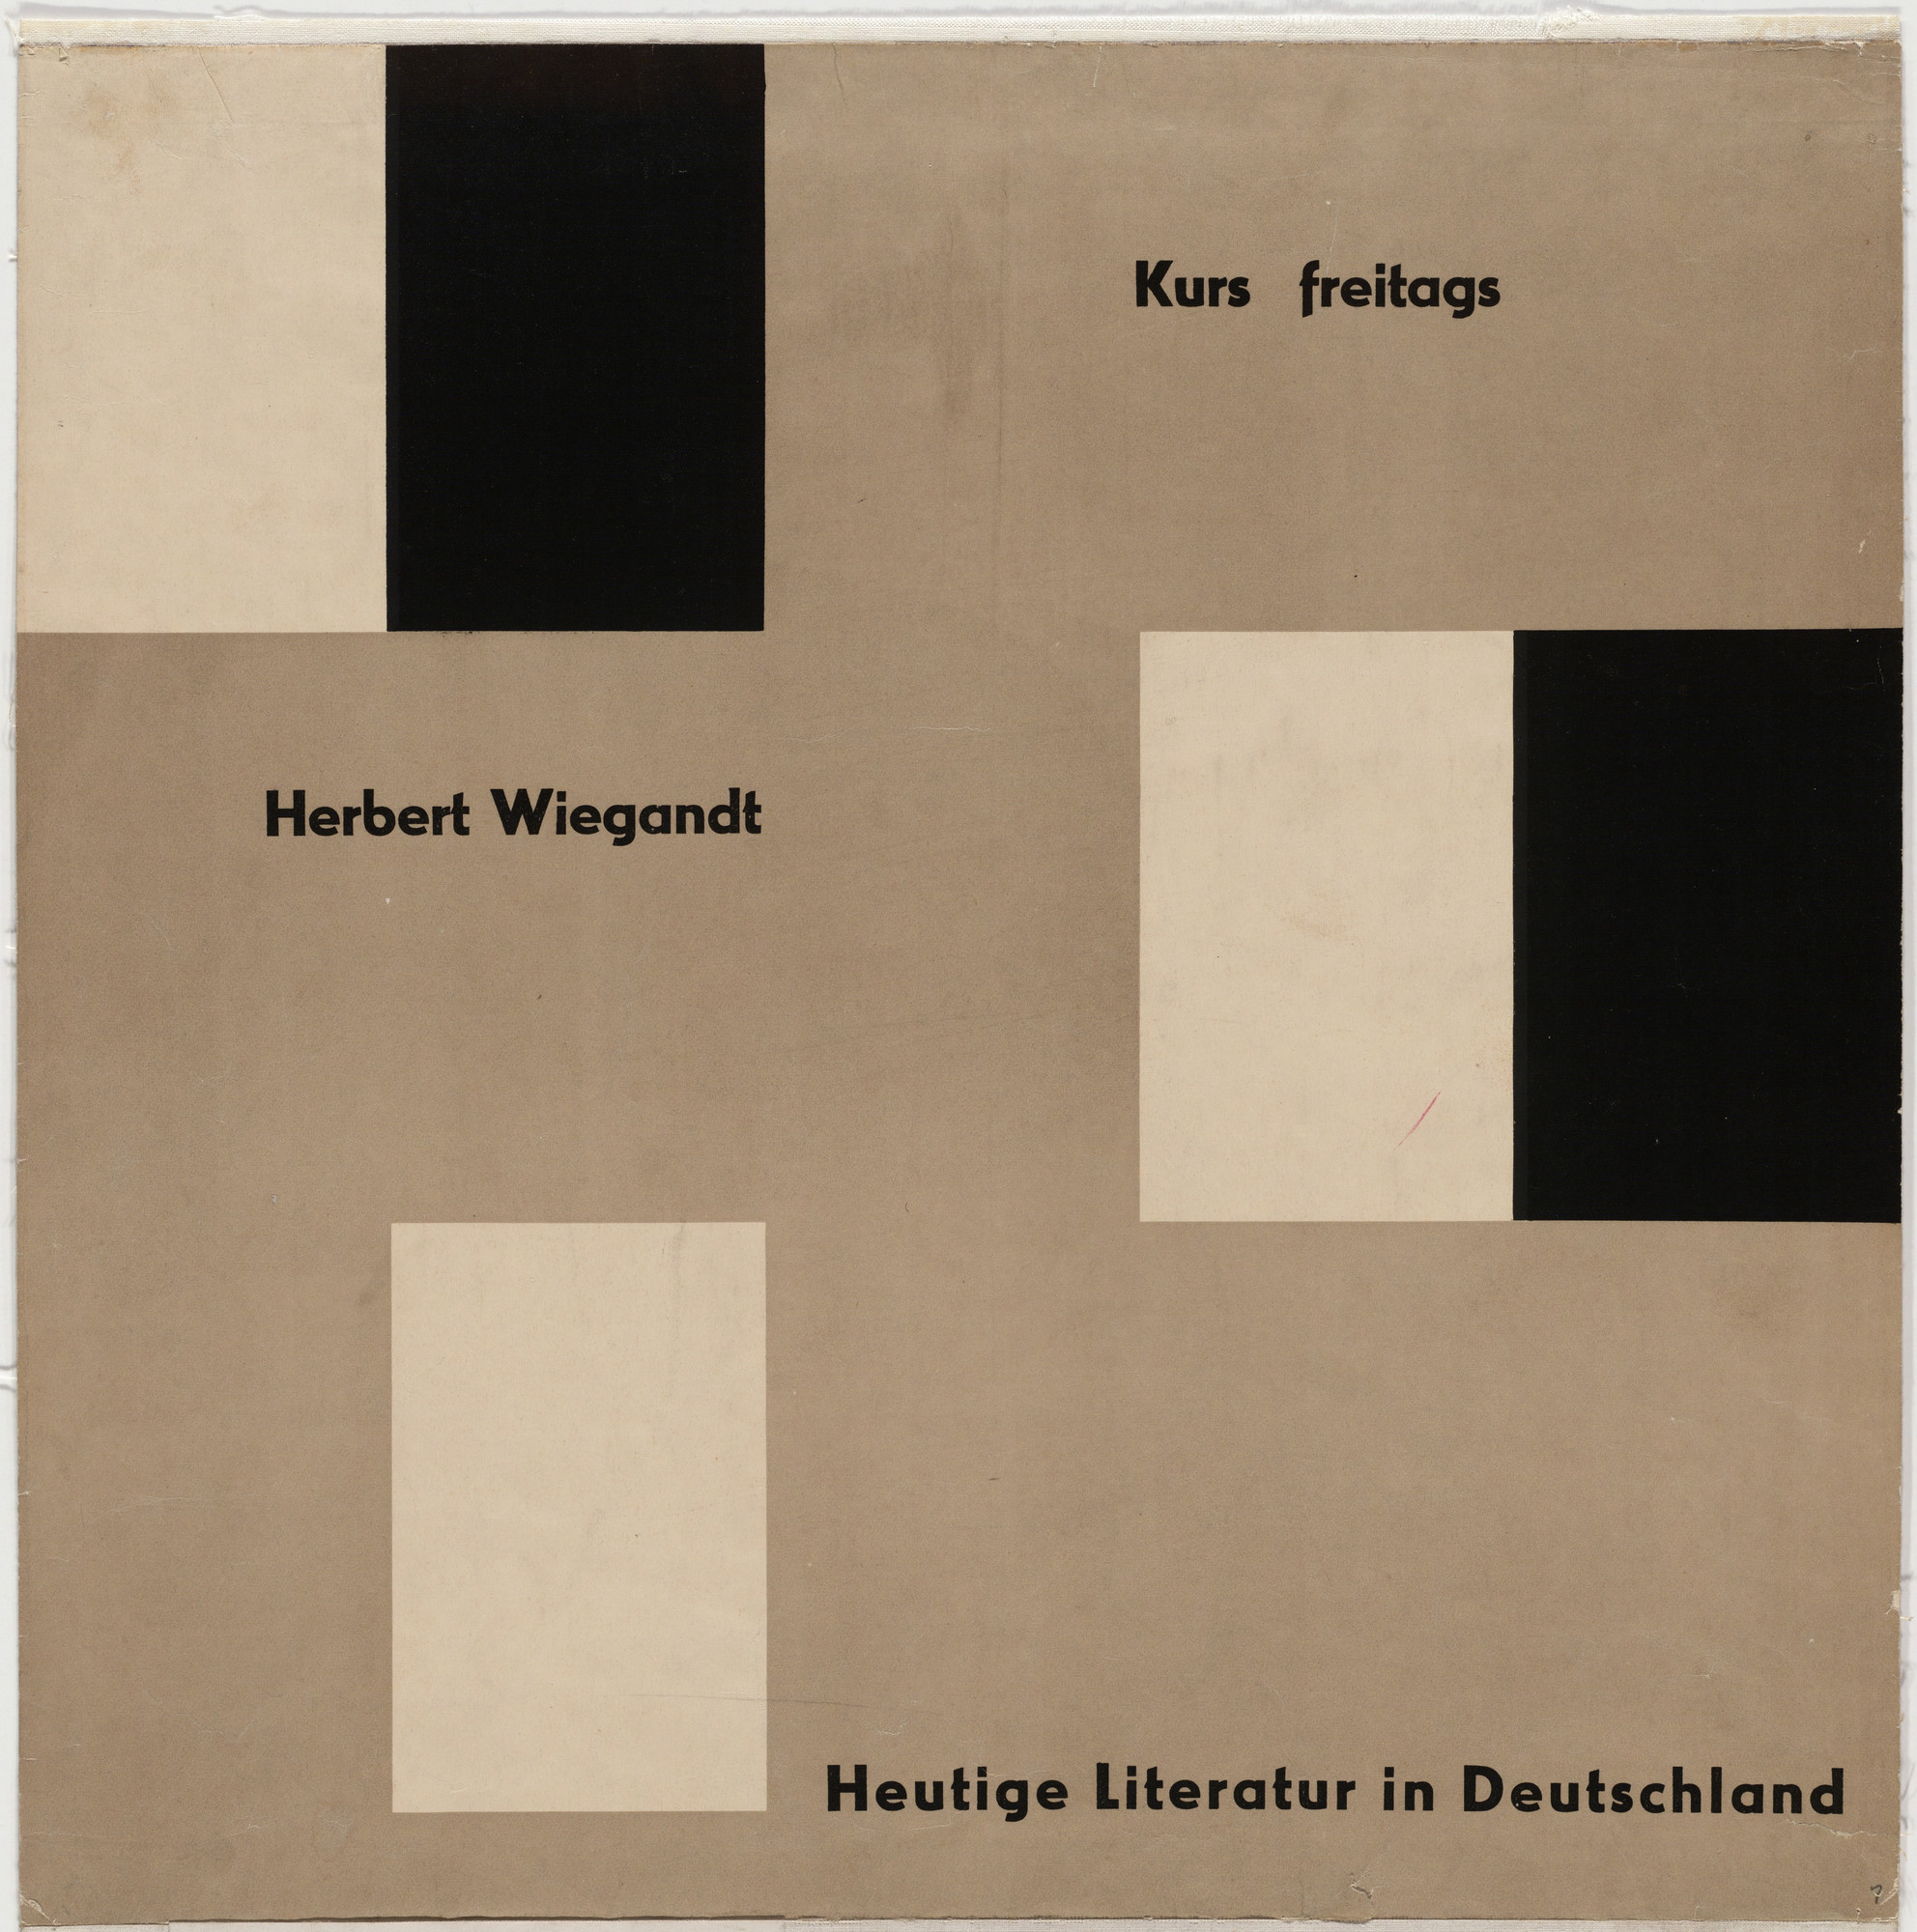 Otl Aicher (also known as Otto Aicher). Herbert Wiegandt - Heutige Literature in Deutschland. c. 1950